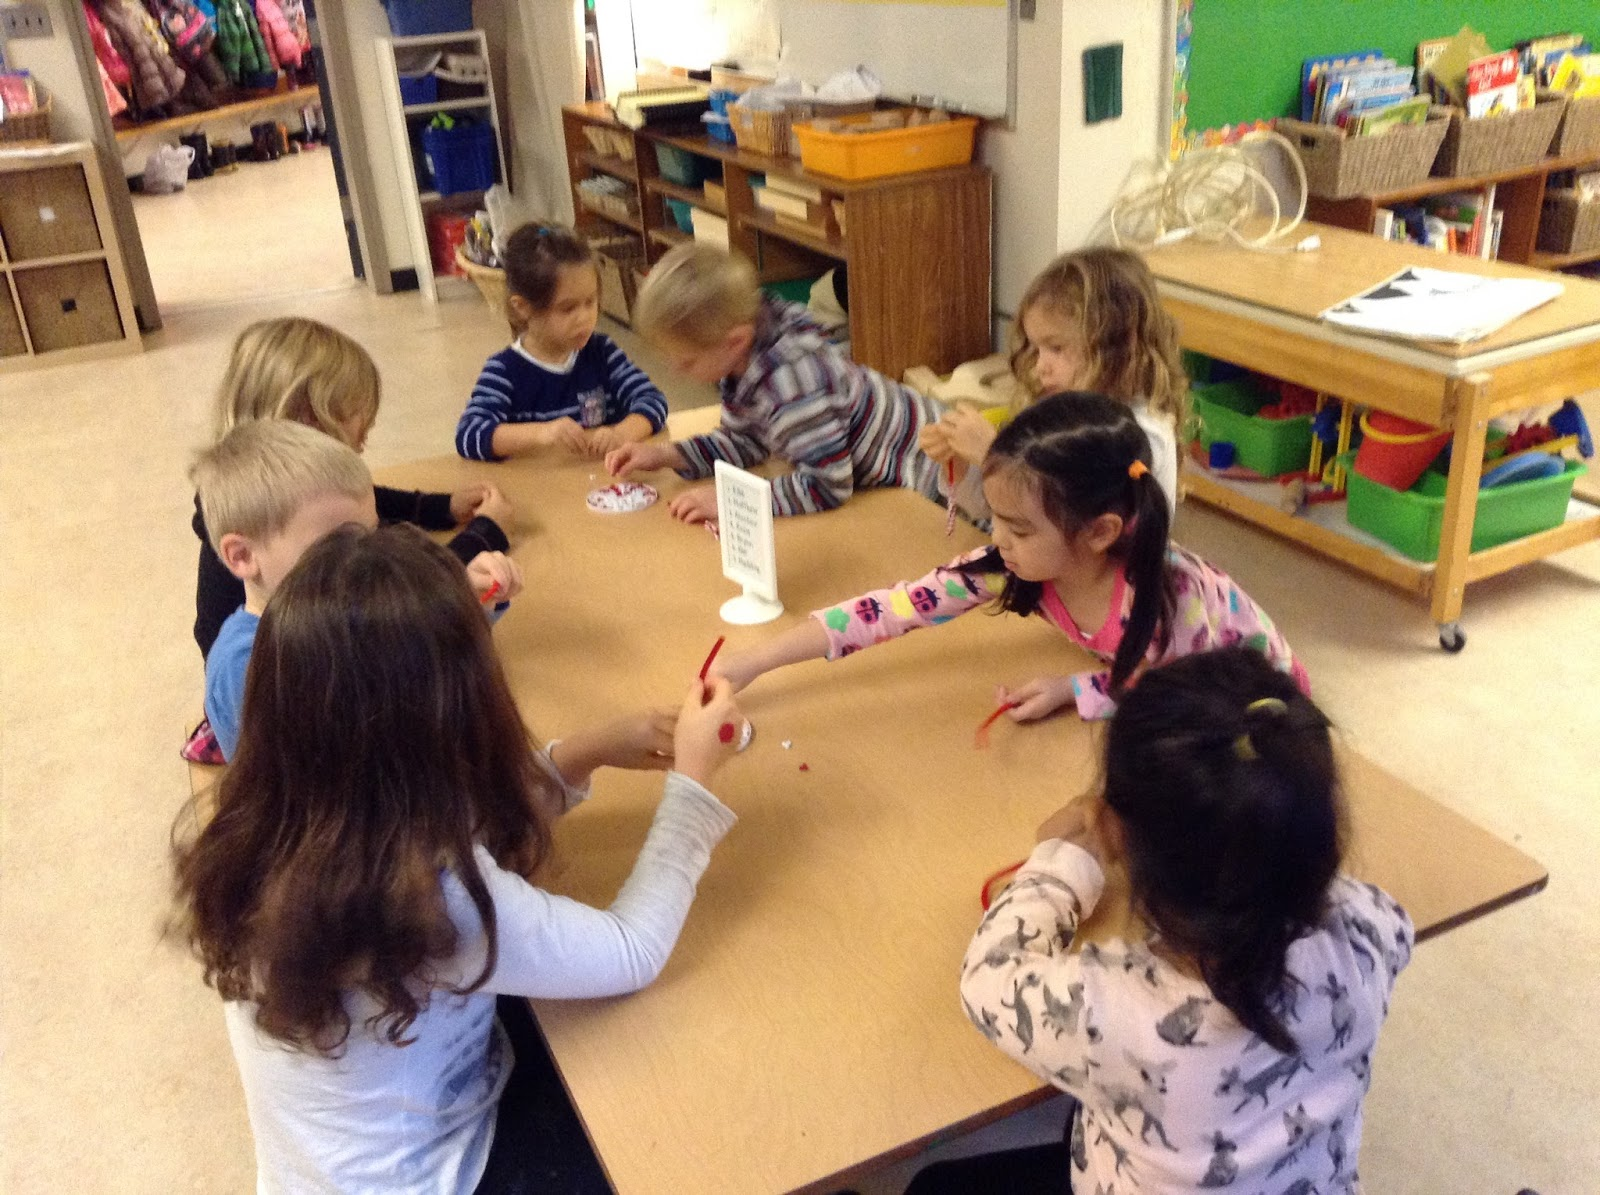 Worksheet Words Rhyming With Today ms spofforths kindergarten candy canes rhyming and concert practice after reading the story we talked about words that rhyme with man wrote them down together sounding our beginning s